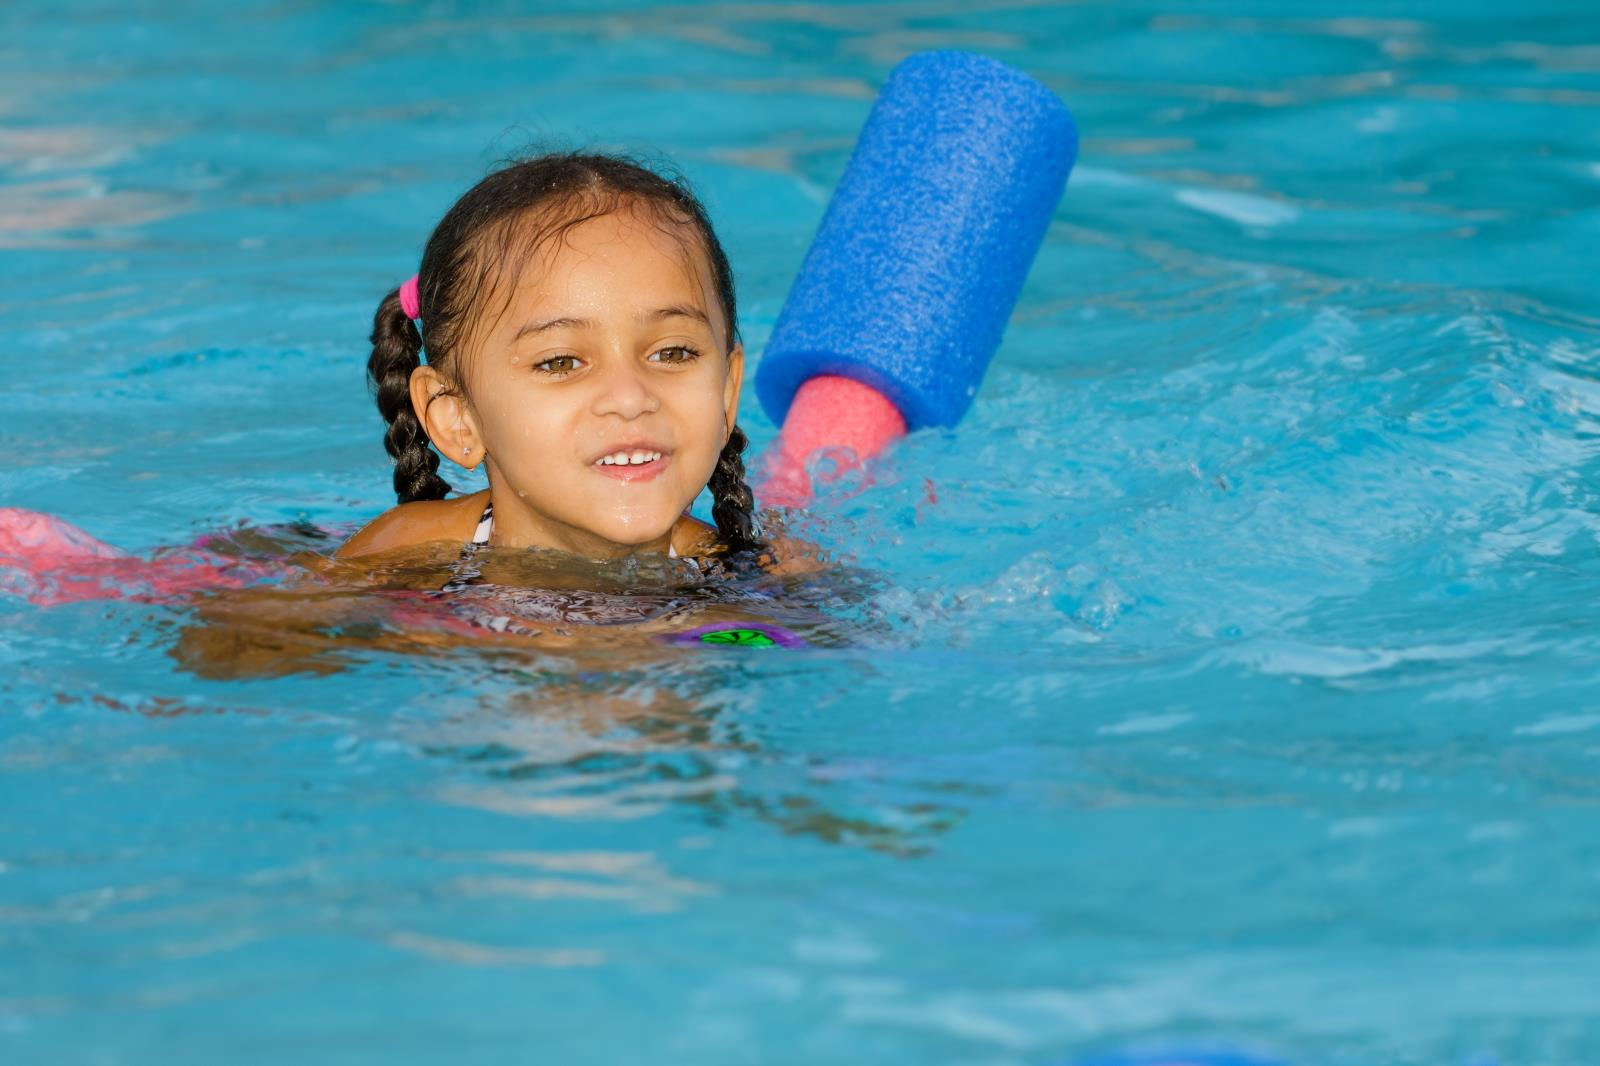 Water Safety - child in water